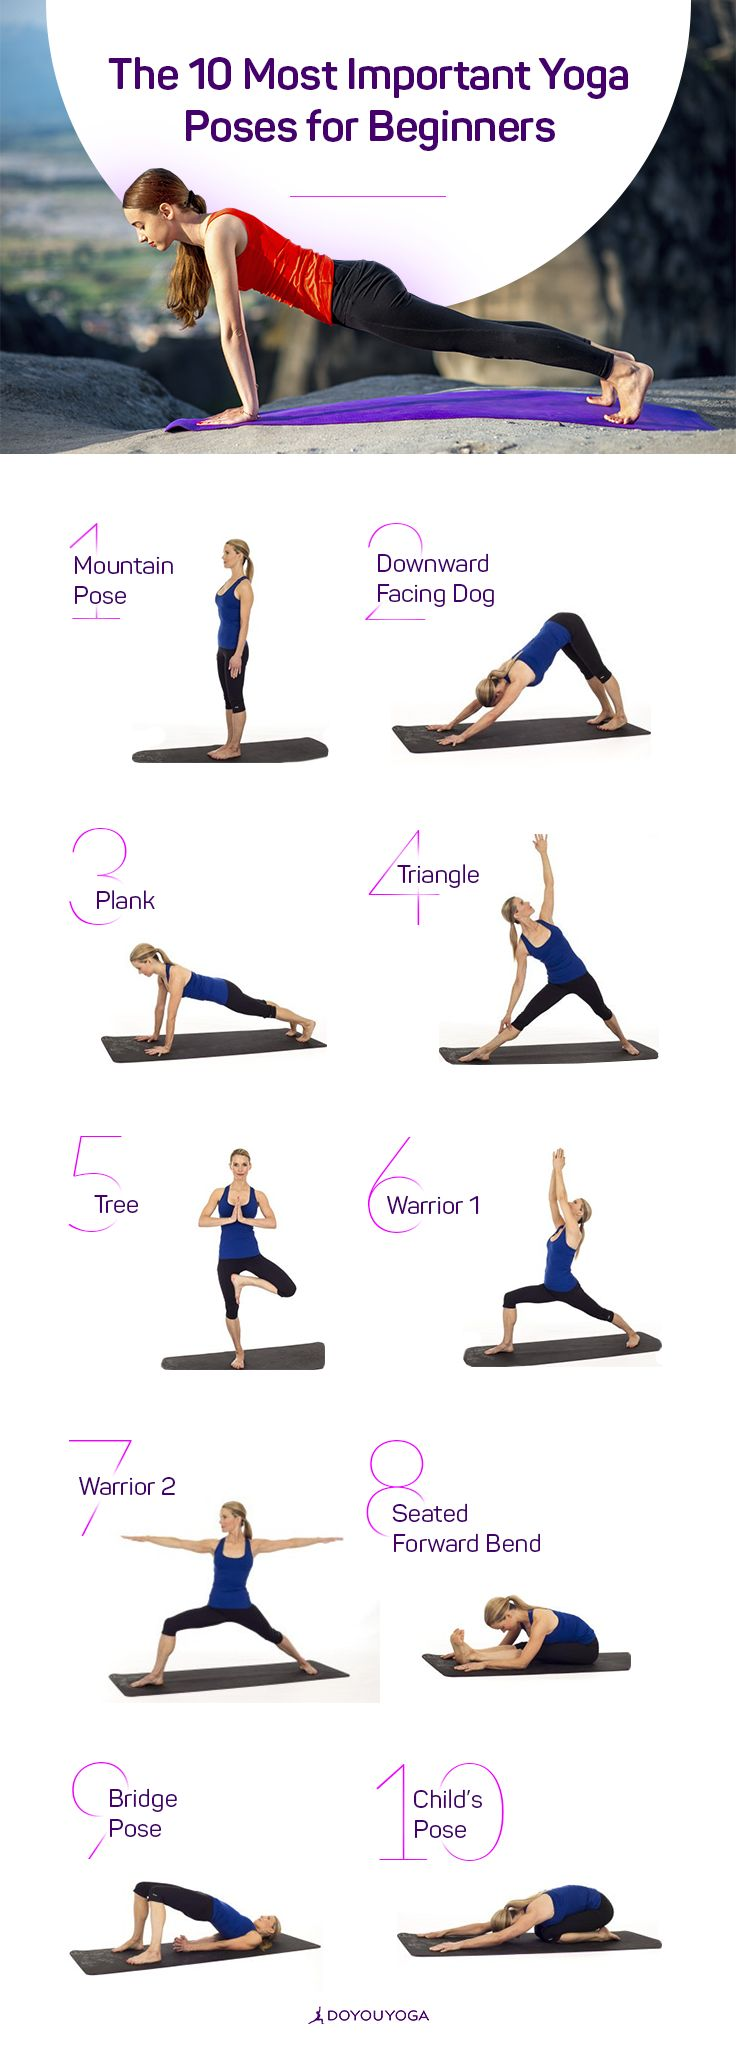 New to yoga? Check out the 10 Most Important Yoga Poses for Beginners | DOYOUYOGA.com | #yoga #yogaposes